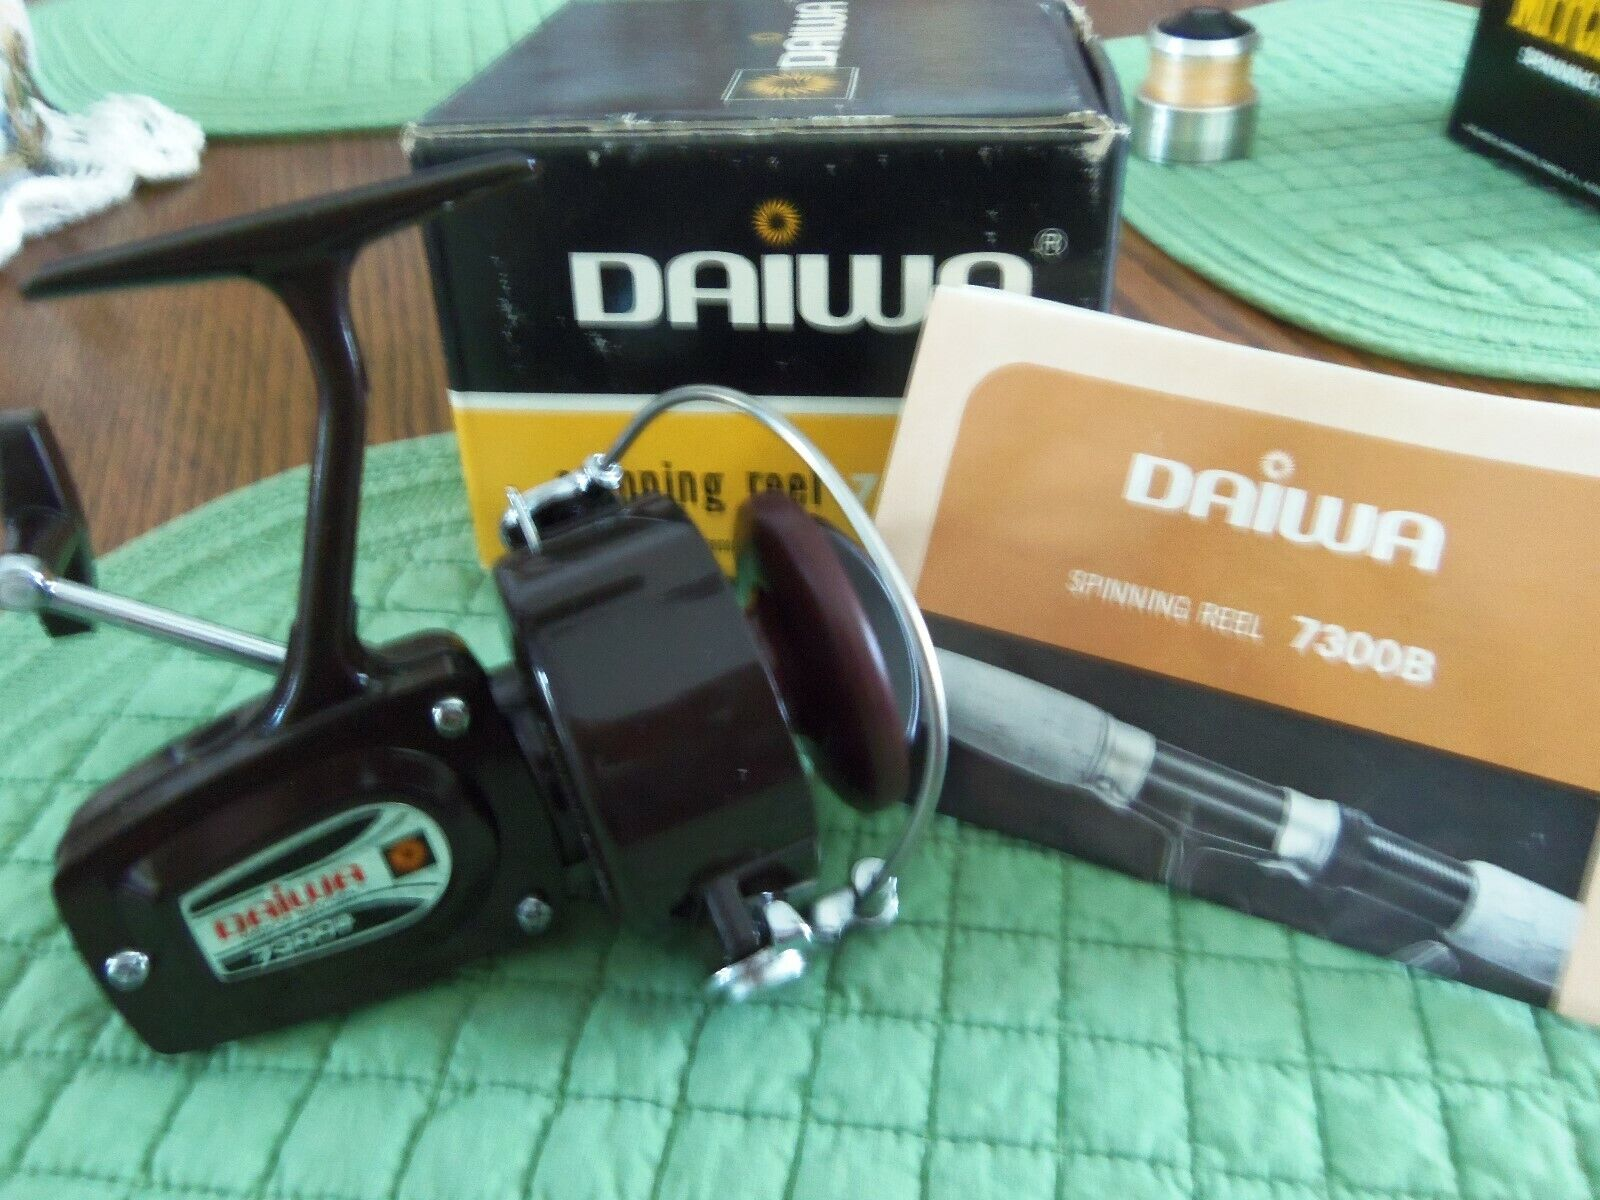 NOS Daiwa  Spinning Reel 7300 B with Booklet  get the latest